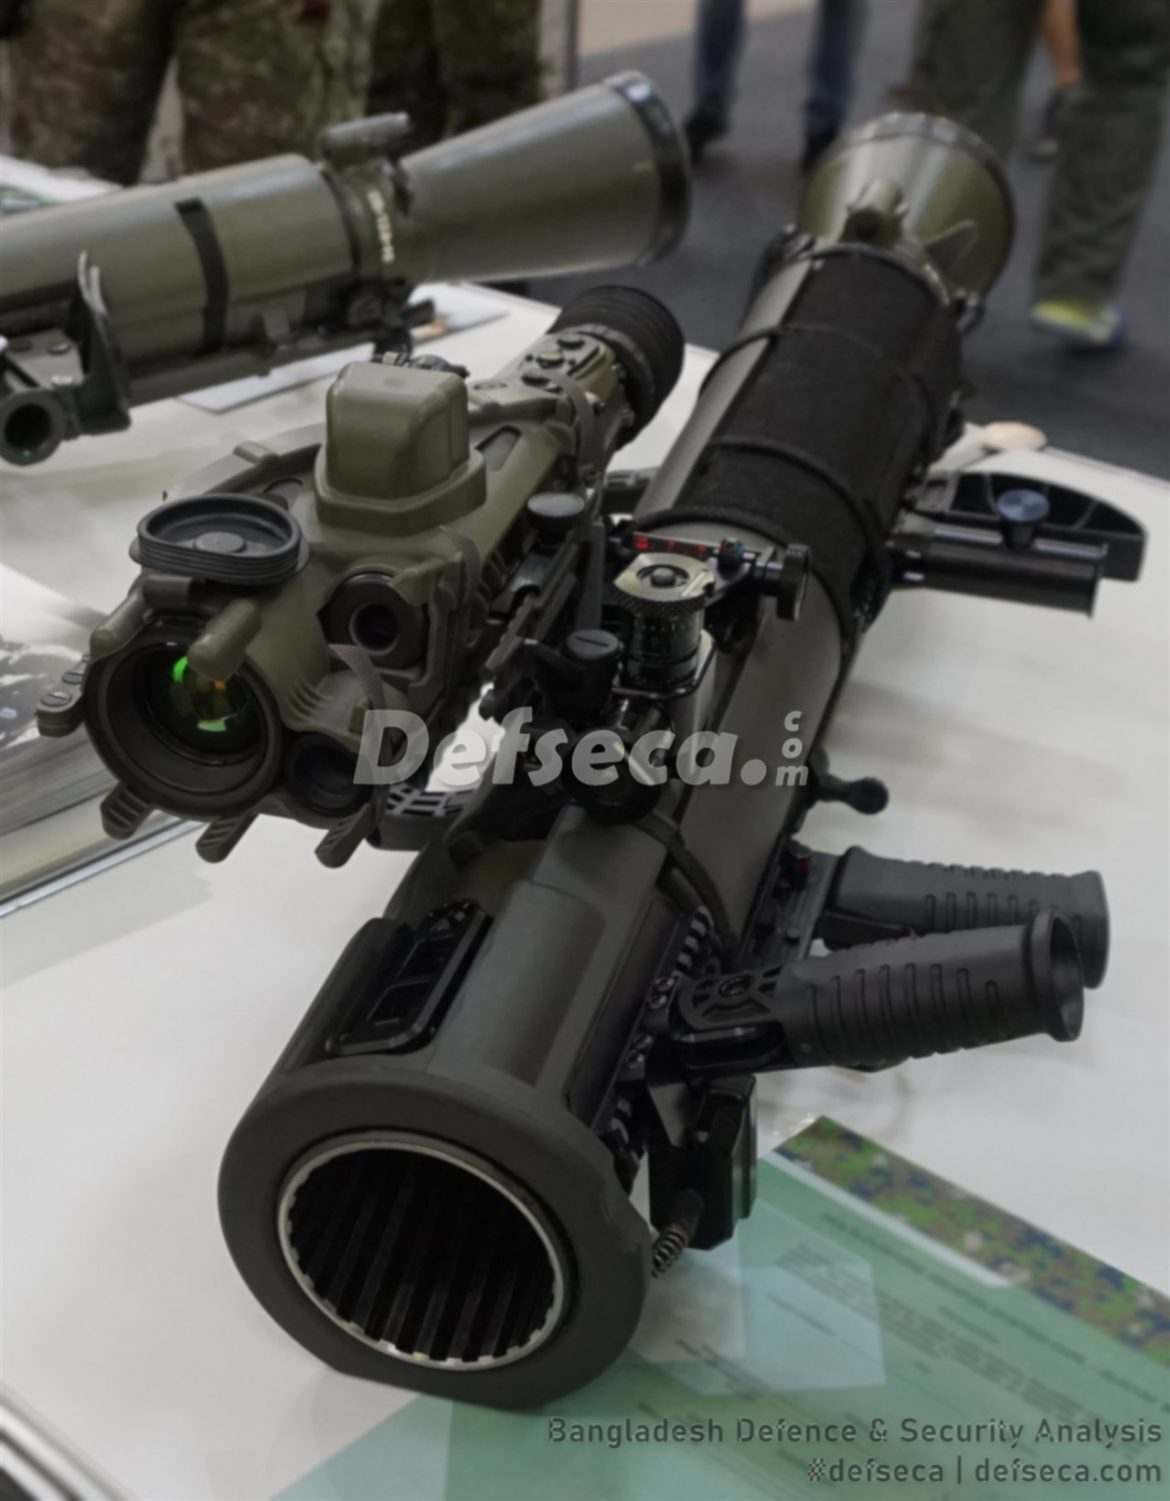 Bangladesh Army purchases Carl Gustaf M4 recoilless weapon